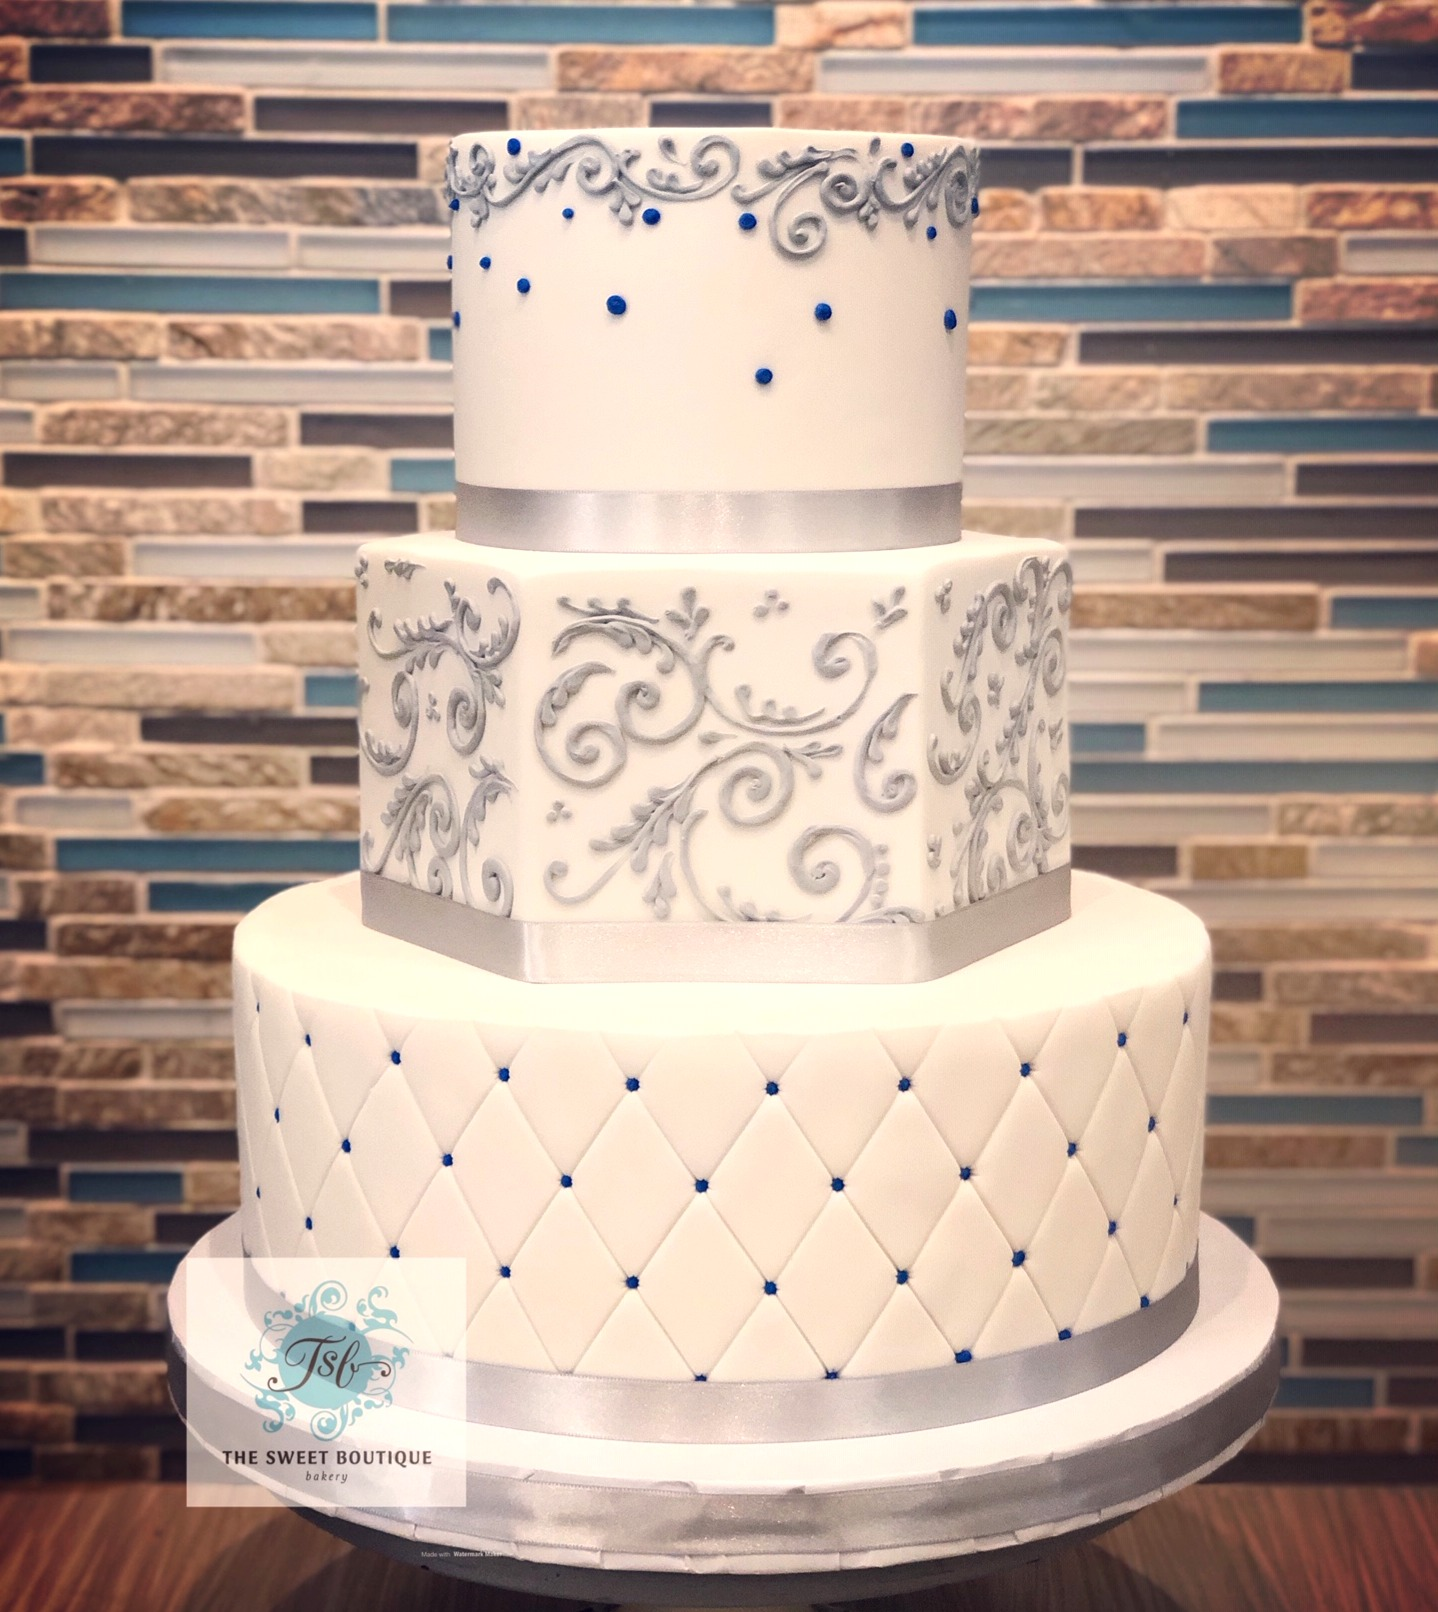 Scroll/Quilt Pattern Wedding Cake